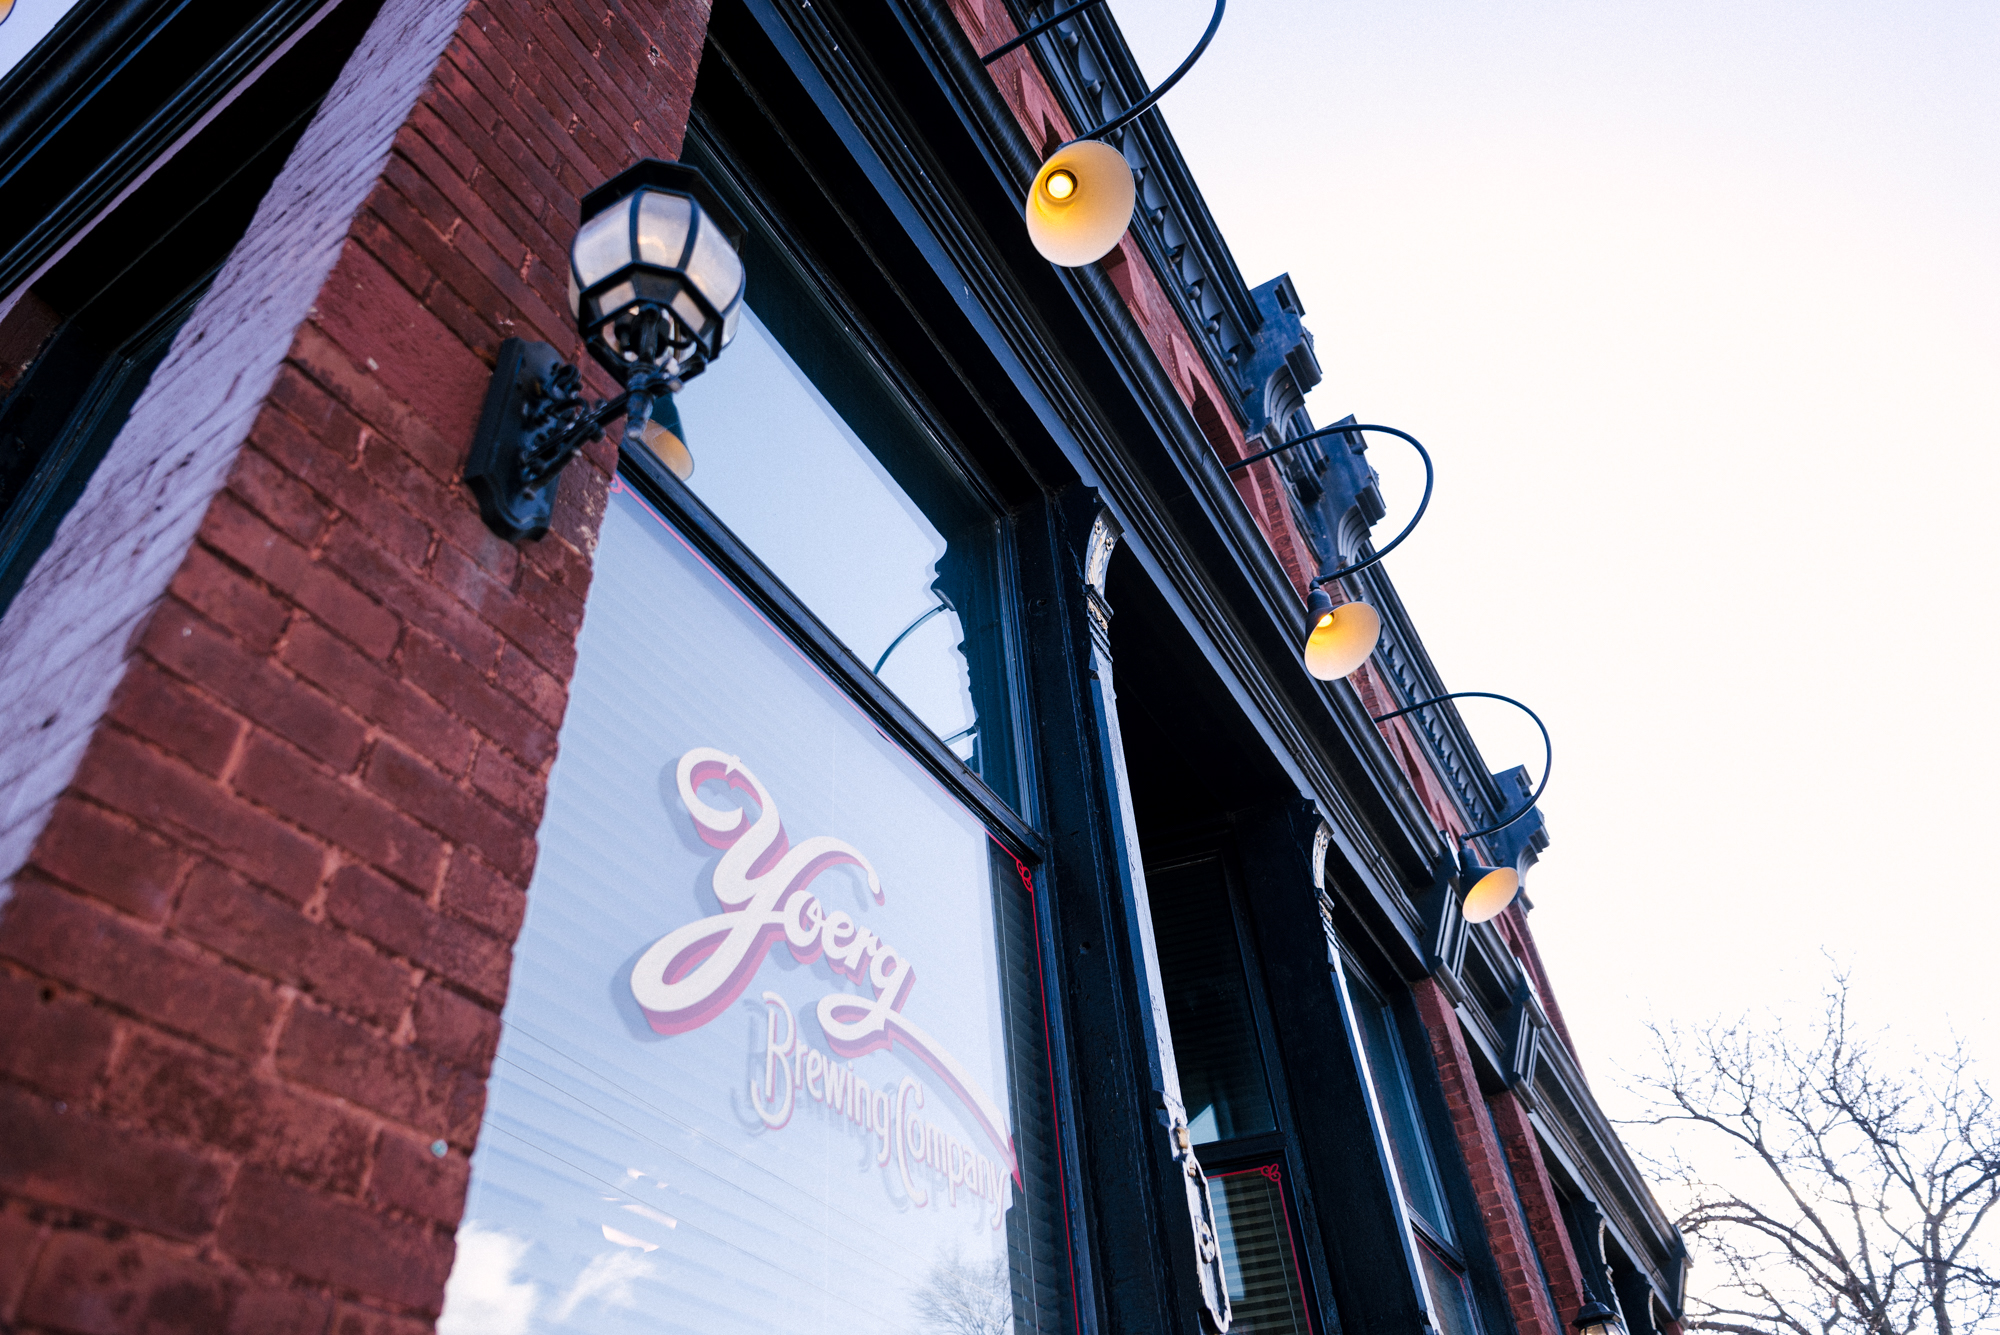 Hand lettering on the Yoerg brewpub in the Schoch Building at 378 Maria Avenue